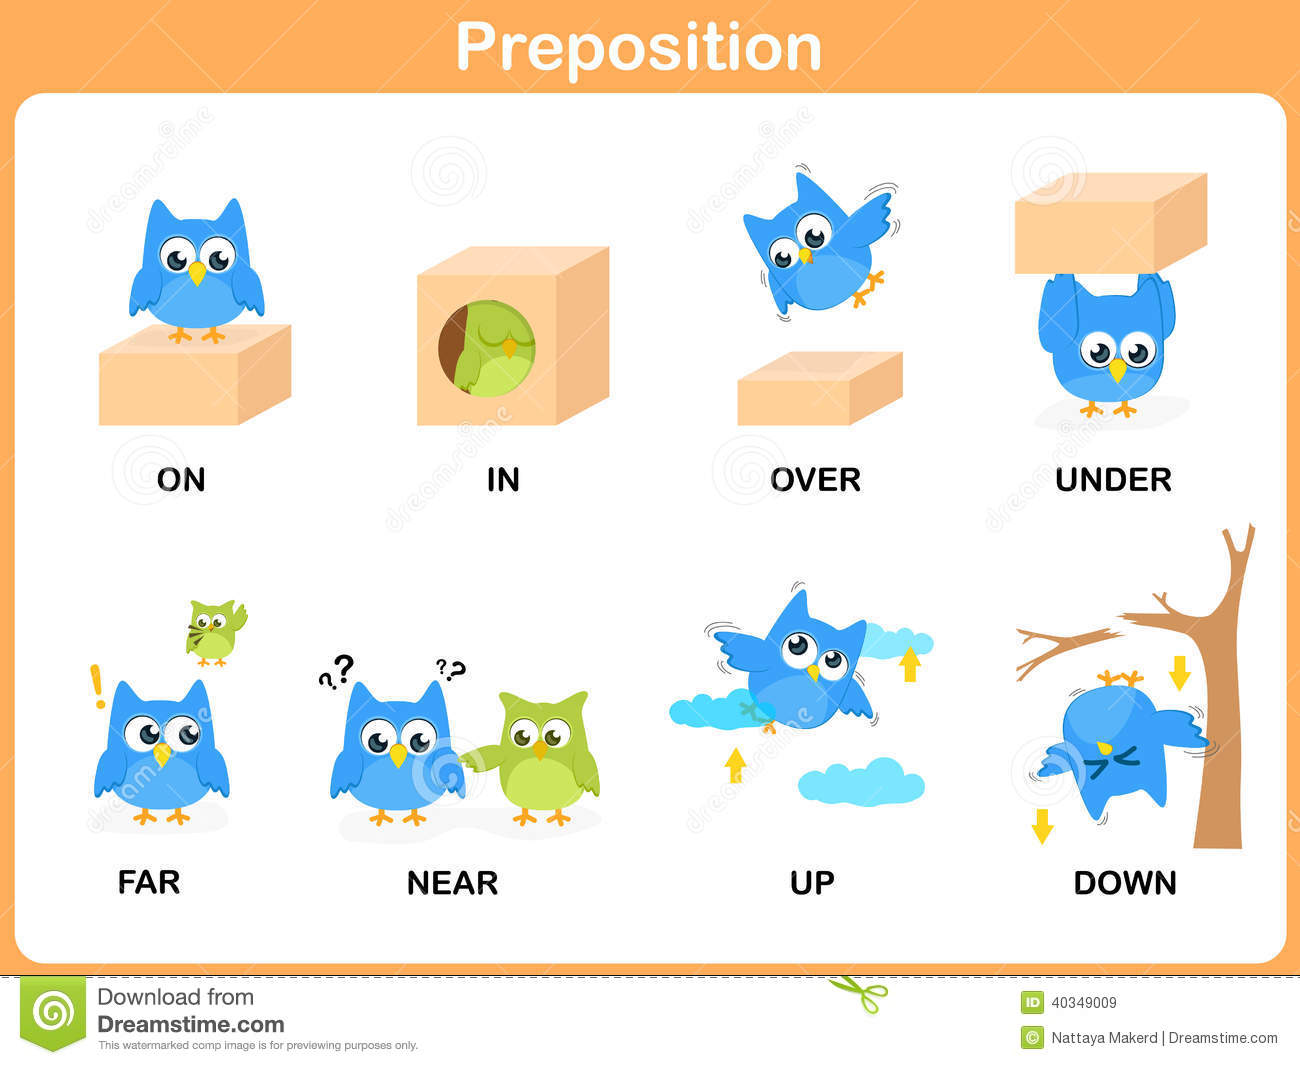 Worksheet Preposition For Kindergarten Wosenly Free Worksheet – Kindergarten Preposition Worksheets